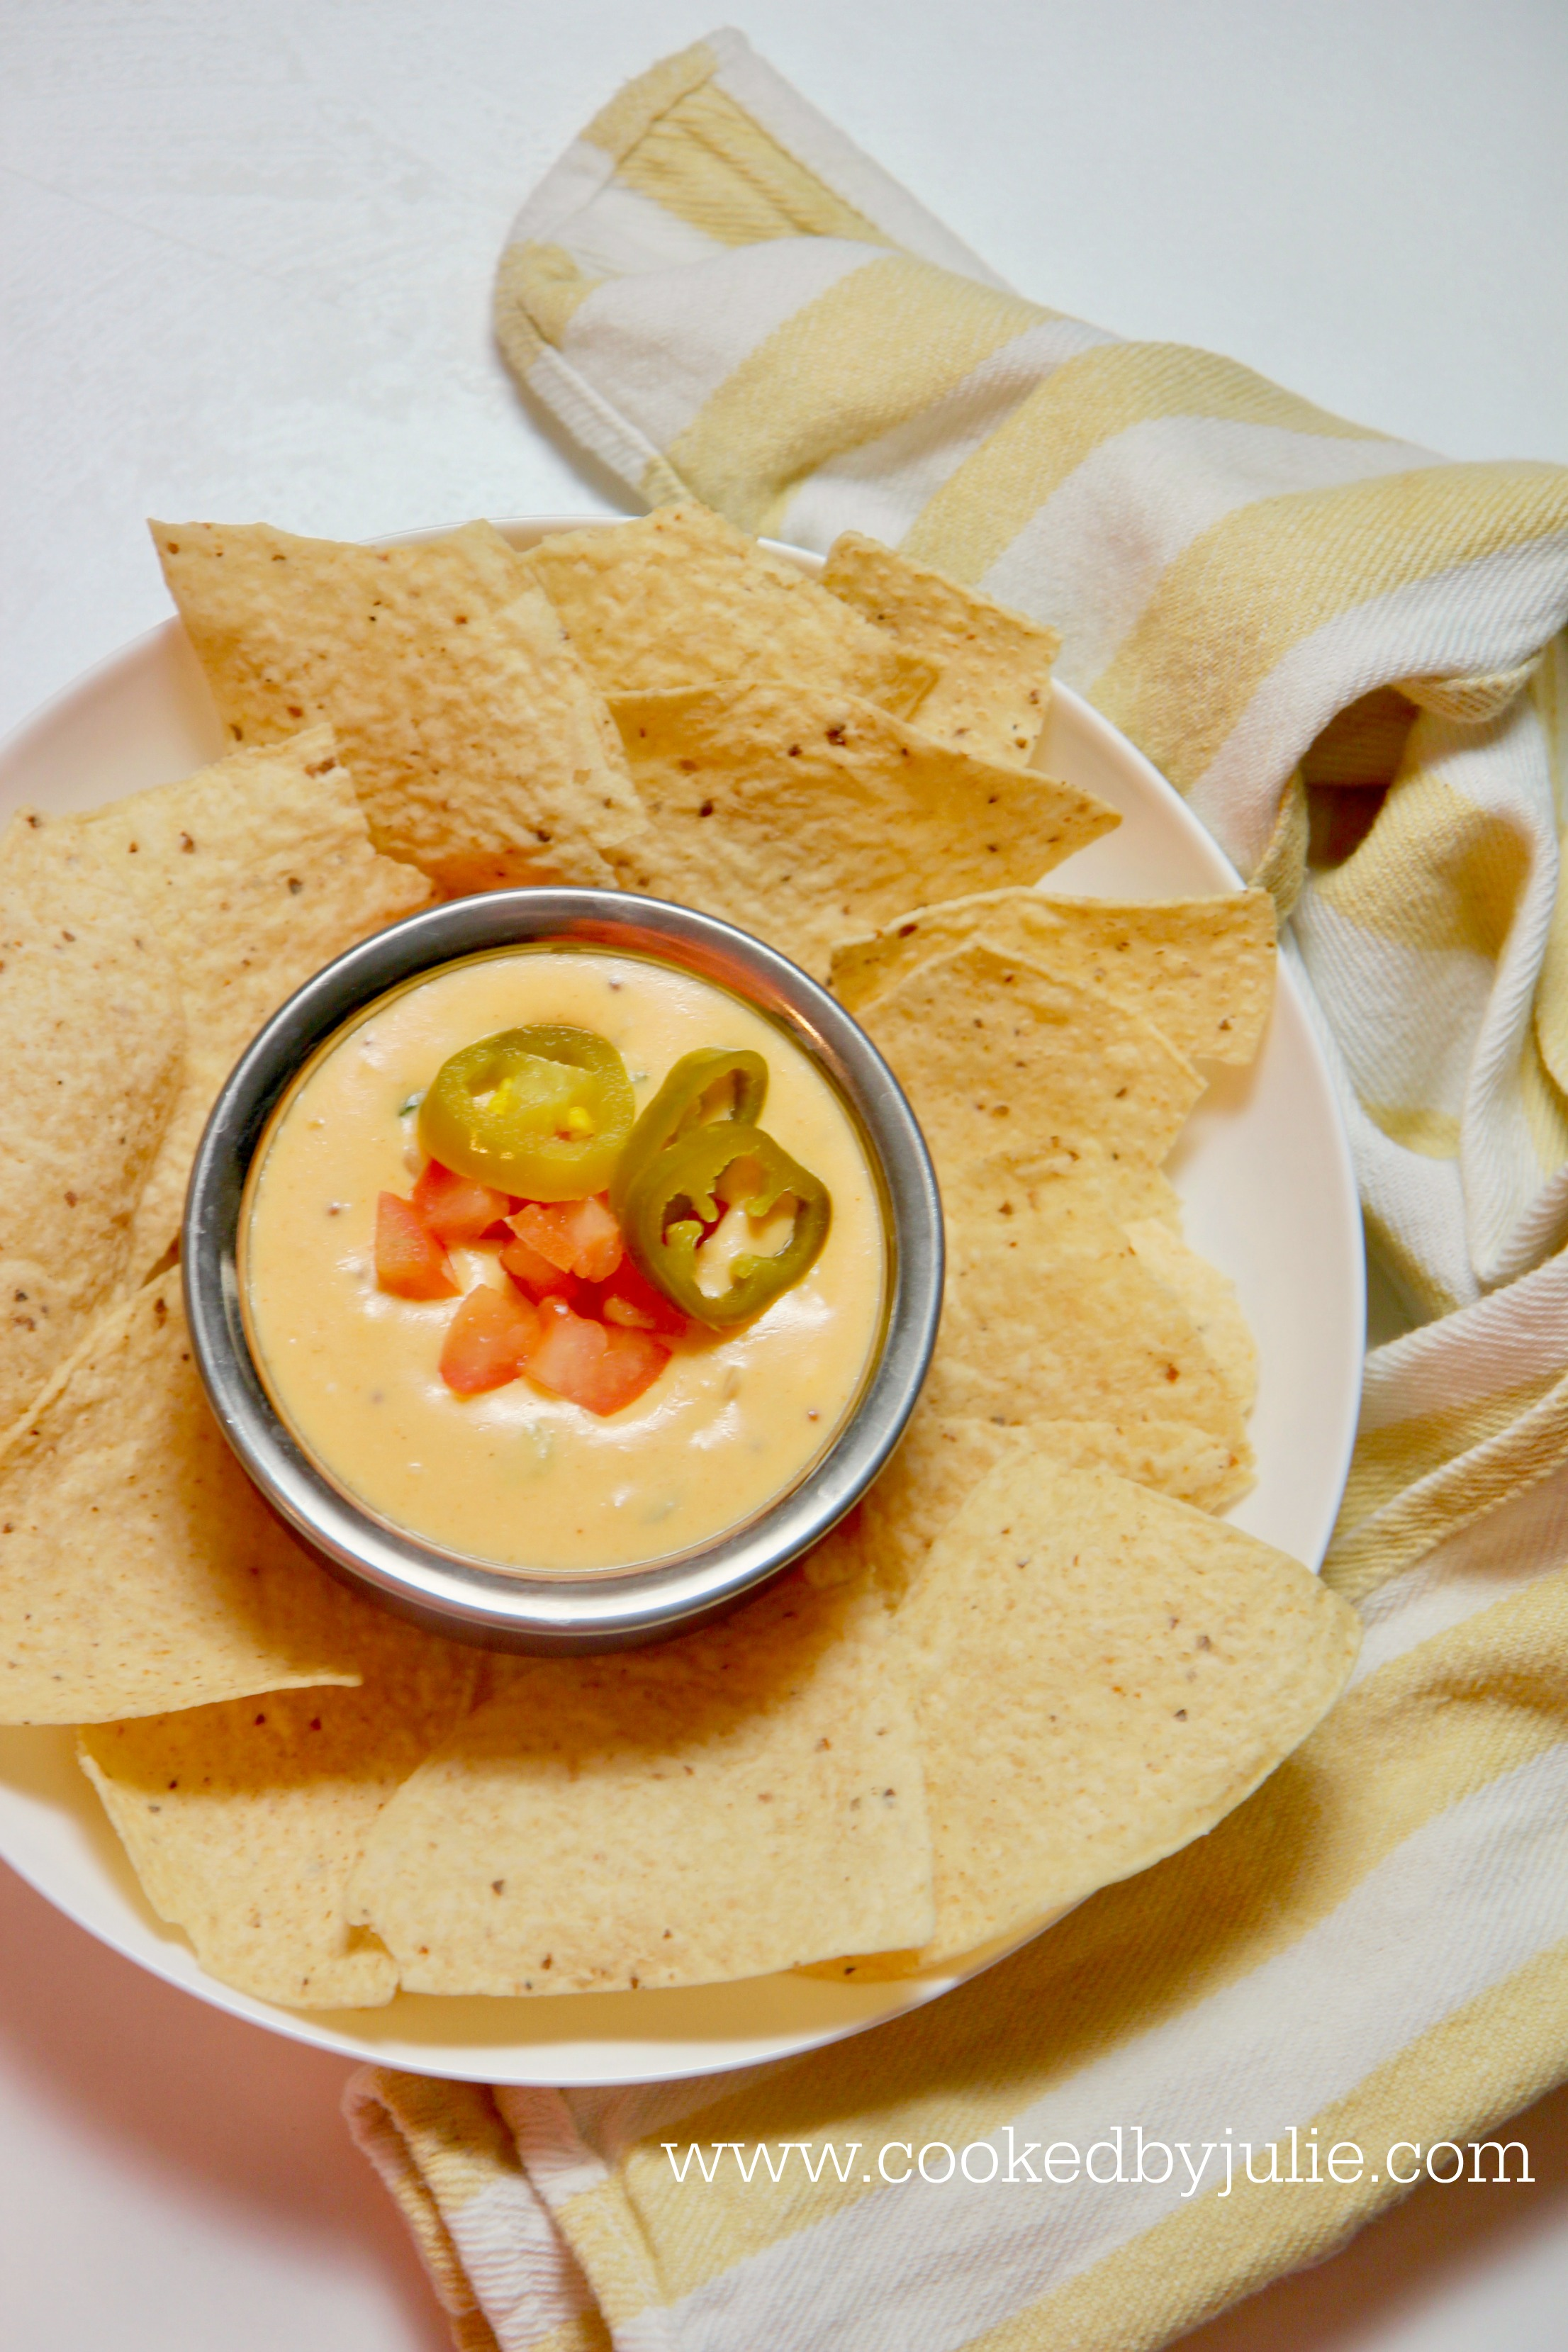 Creamy and cheesy queso dip made with real cheese